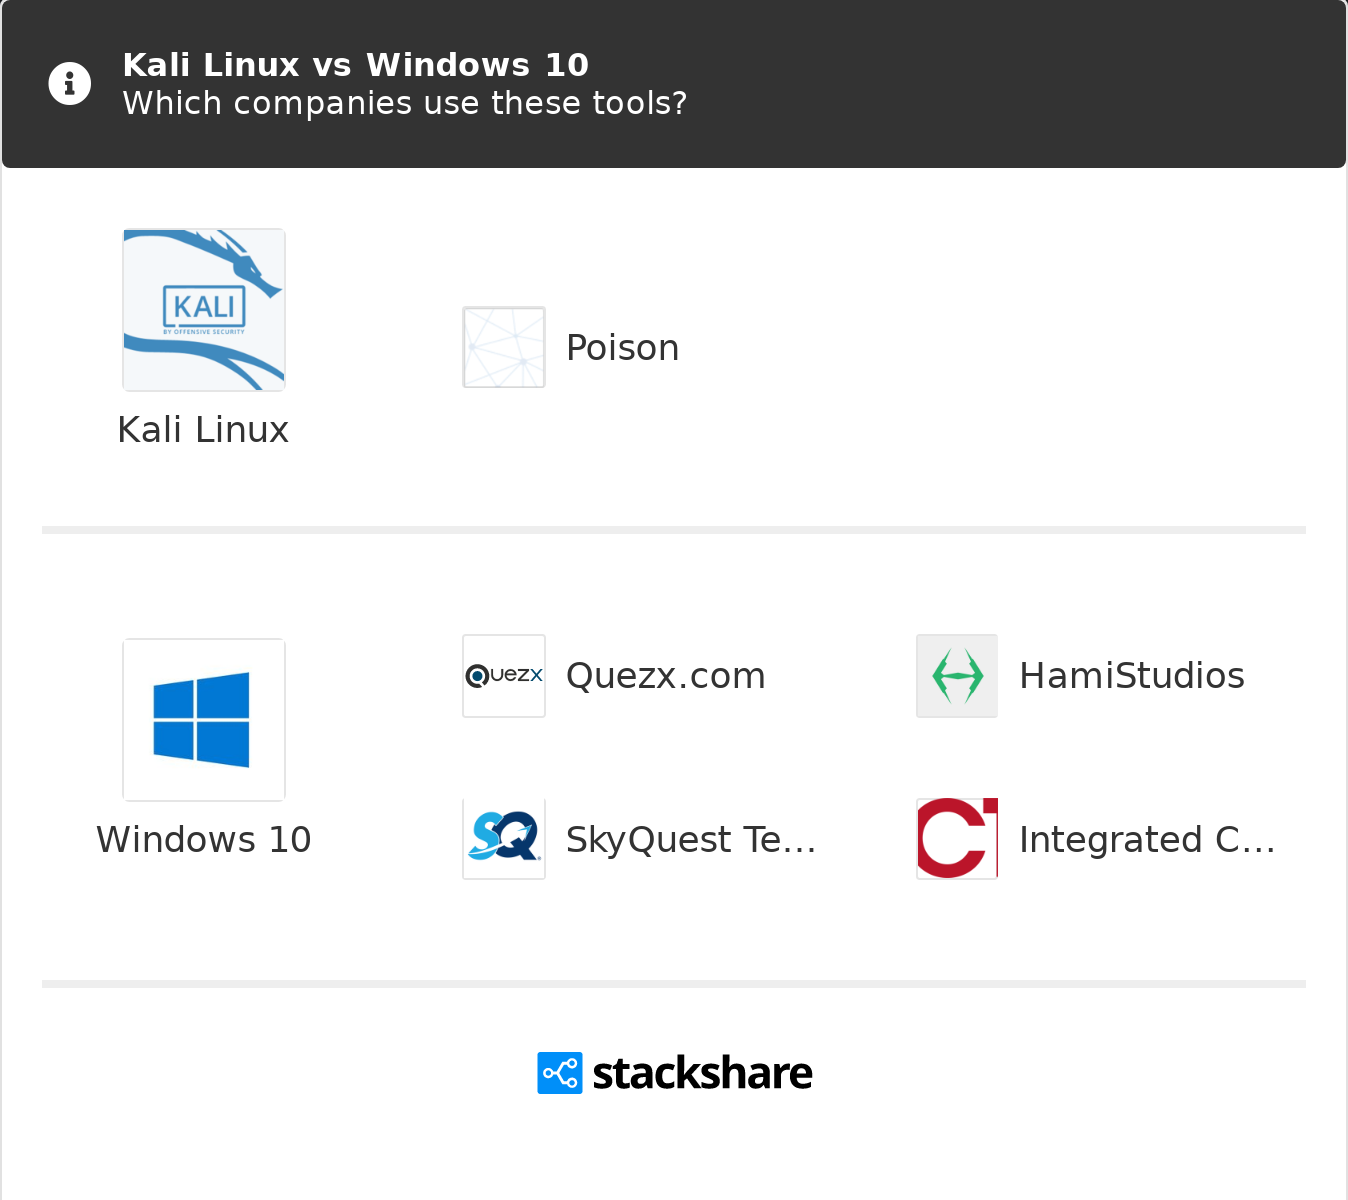 Kali Linux vs Windows 10 | What are the differences?